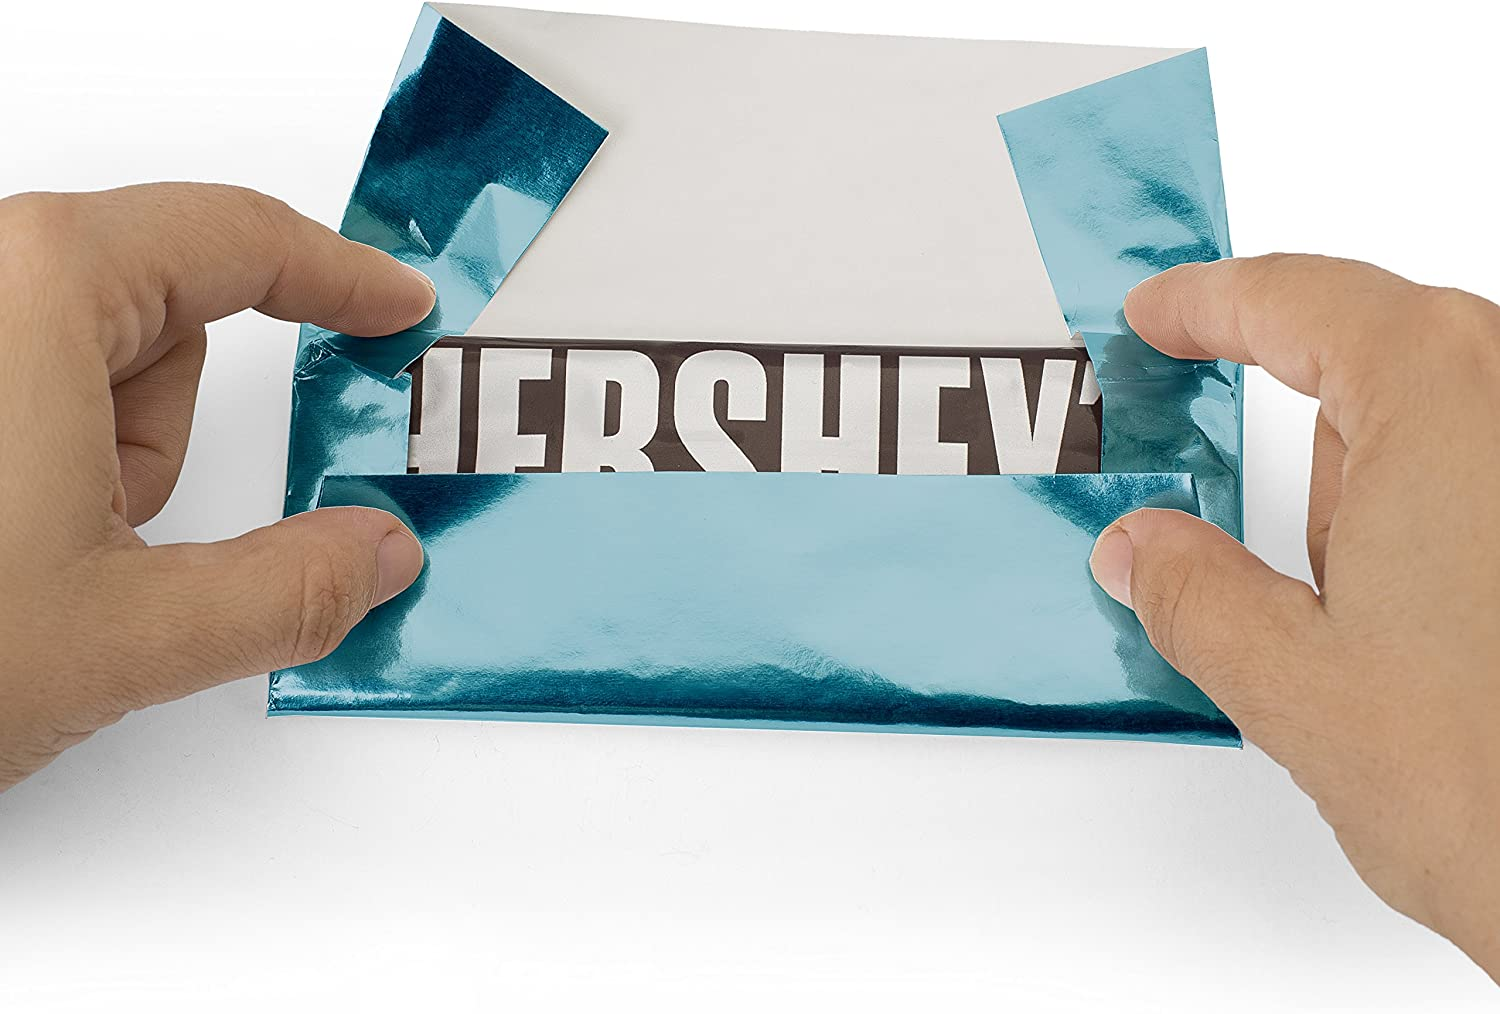 Baby Blue Foil Wrapper Fits on 1.55 oz Hershey Candy Bars Pack of 25 Candy Bar Wrappers with Paper Backing 6x 7.5